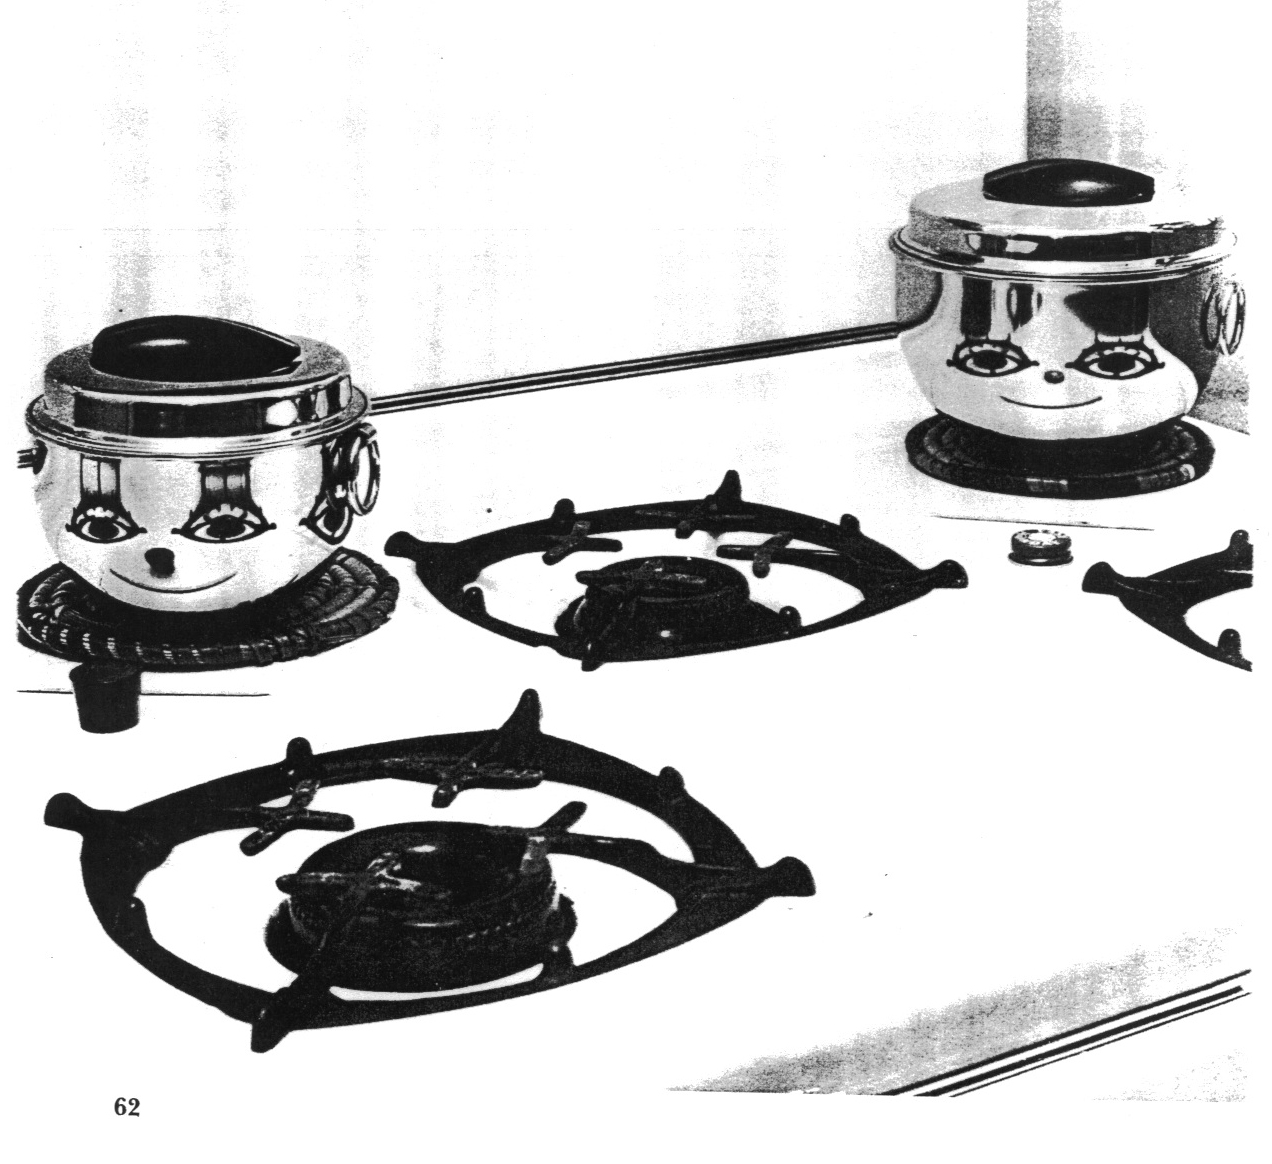 Toy Inventor's Blog Serves First Course: Stove-top Illusions